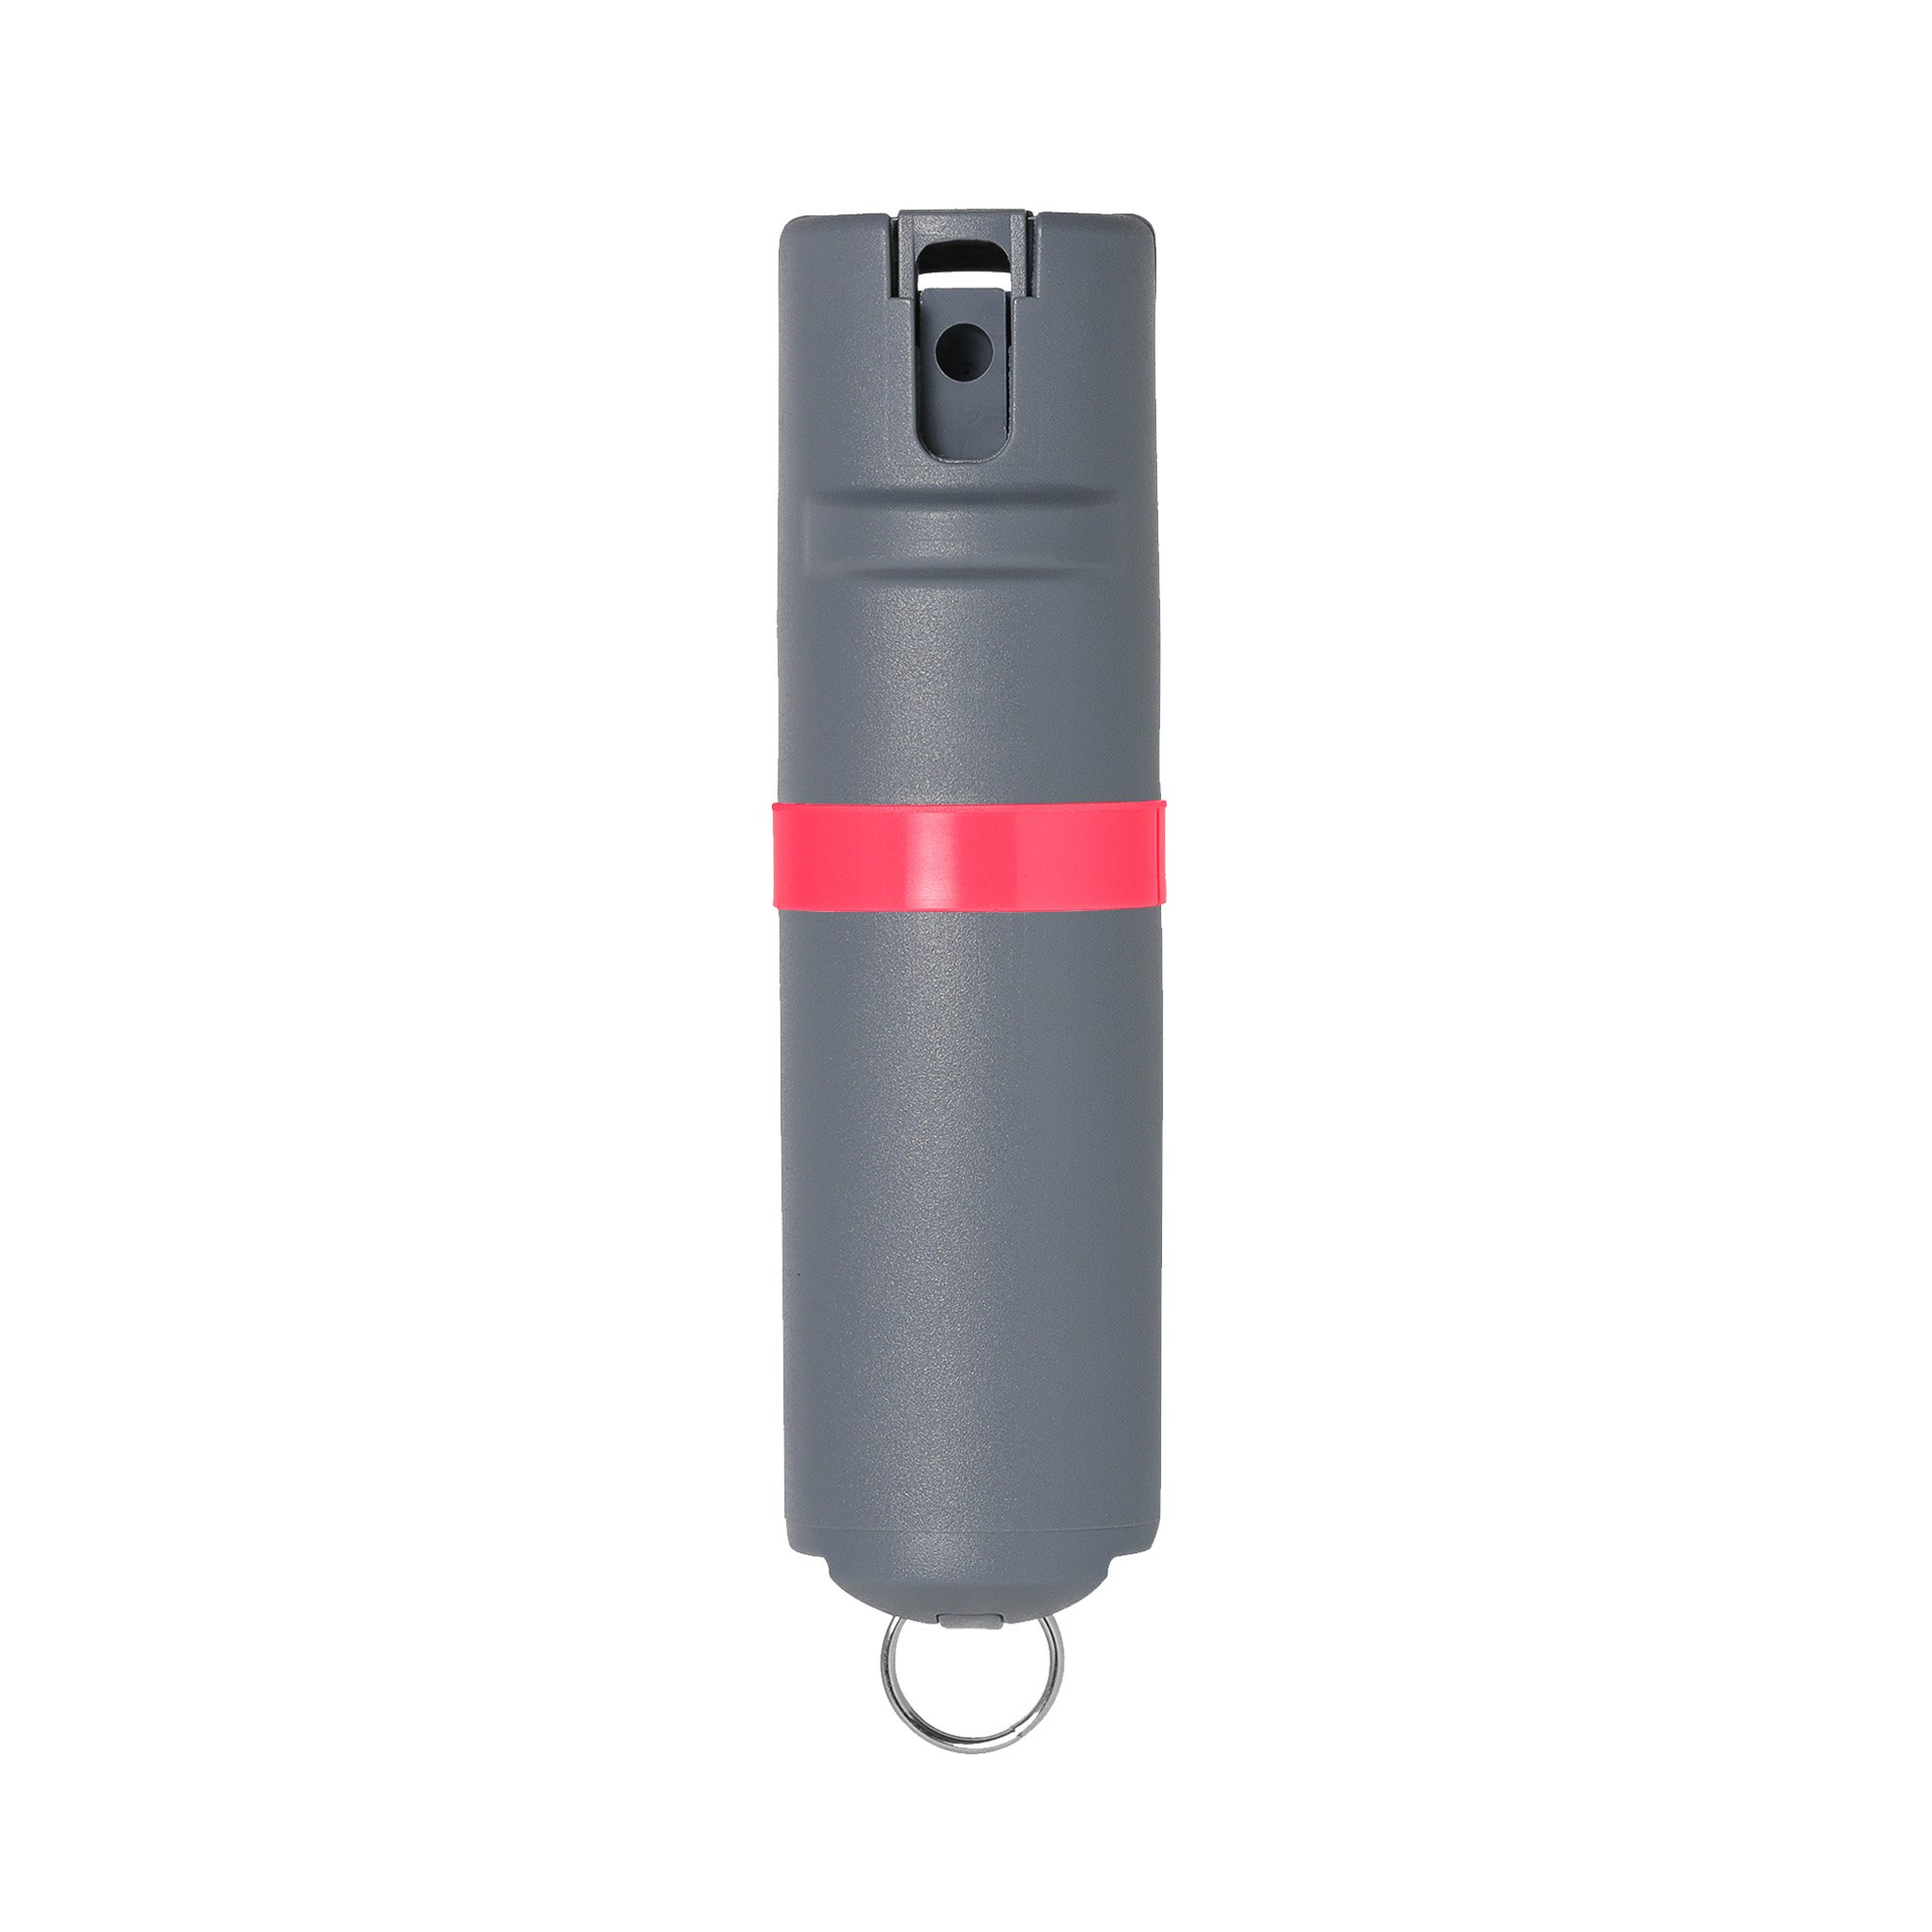 POM Grey Pepper Spray Keychain Model - Maximum Strength Self Defense OC Spray Safety Flip Top 10ft Range Compact Discreet for Keys Backpack Quick Key Release (Pink) by POM